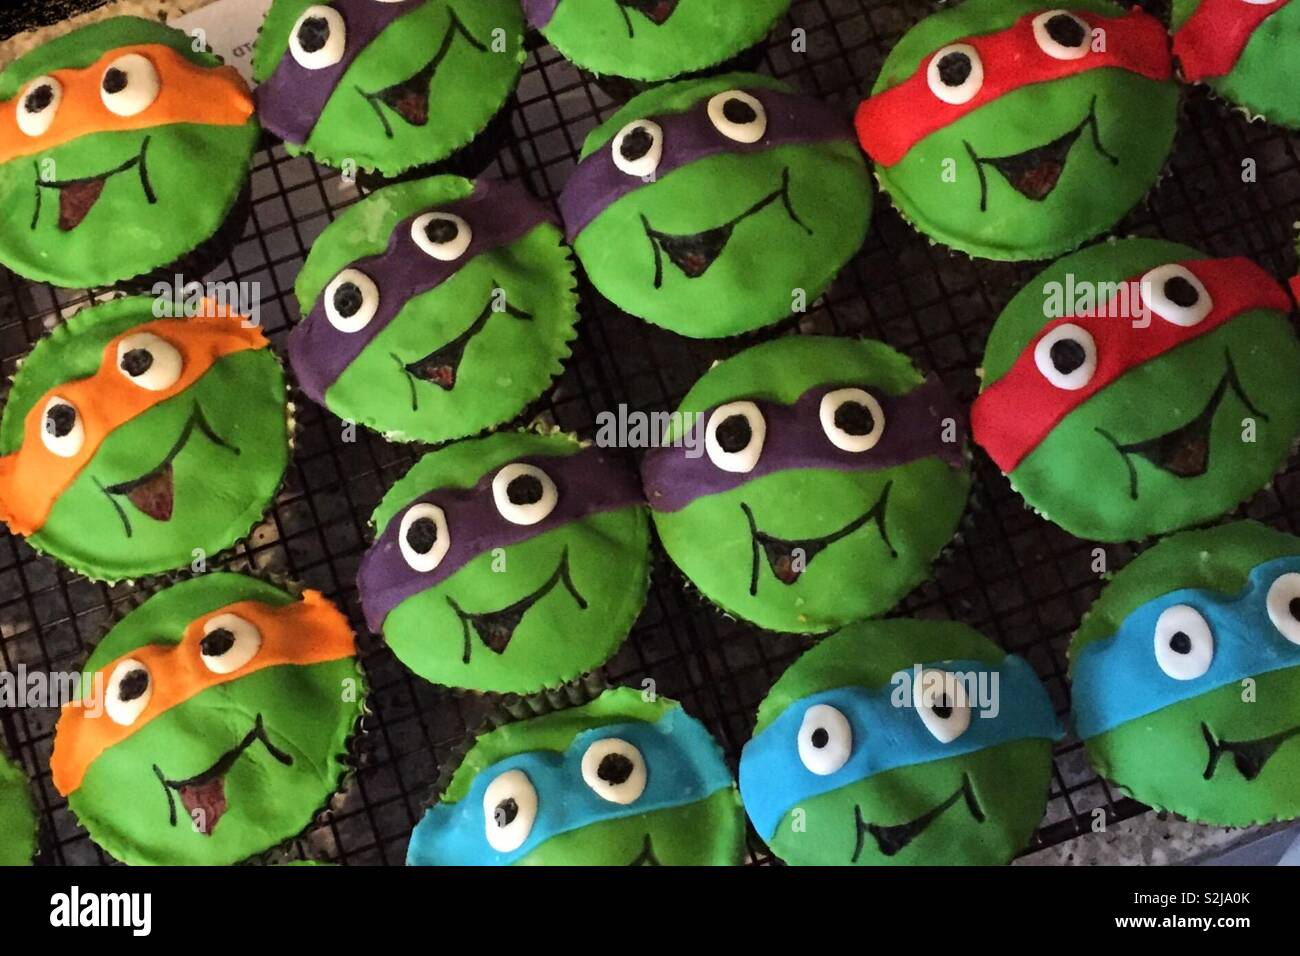 Kids Cakes For A Party Decorated In The Style Of Teenage Mutant Ninja Turtles Royal Icing Homemade Baking Birthdays